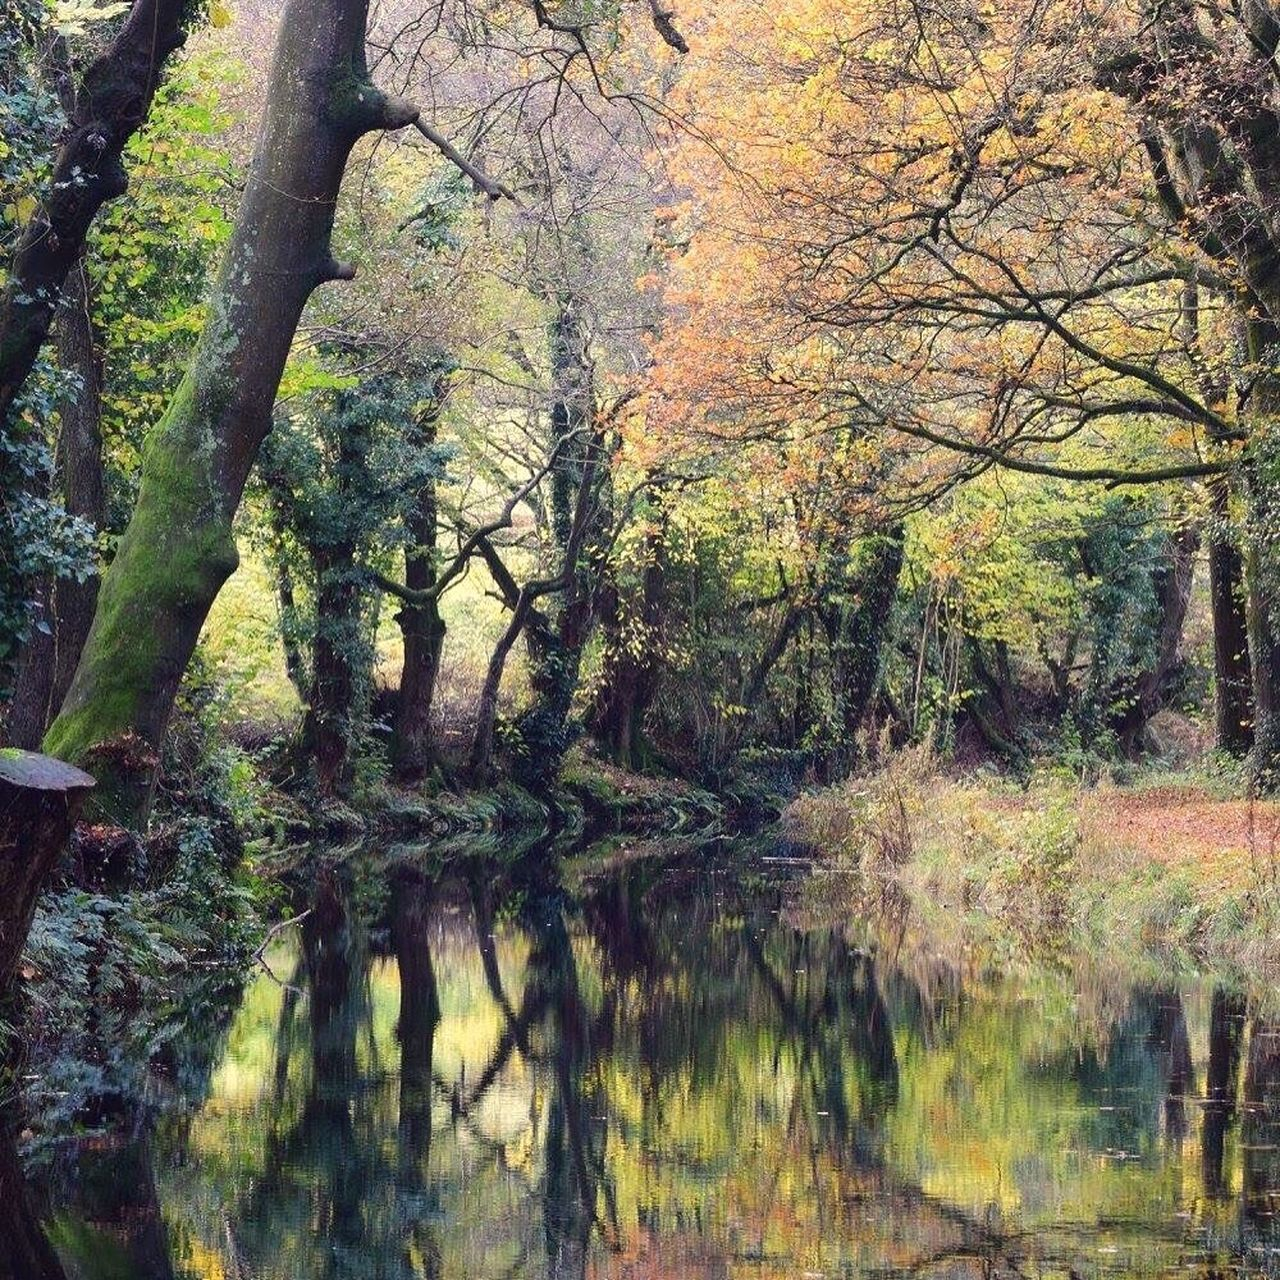 Autumn Colors Autumn Leaves Tree Nature Reflection Water Beauty In Nature No People Canal Towpaths Gilwern Canal Brecon Beacons National Park